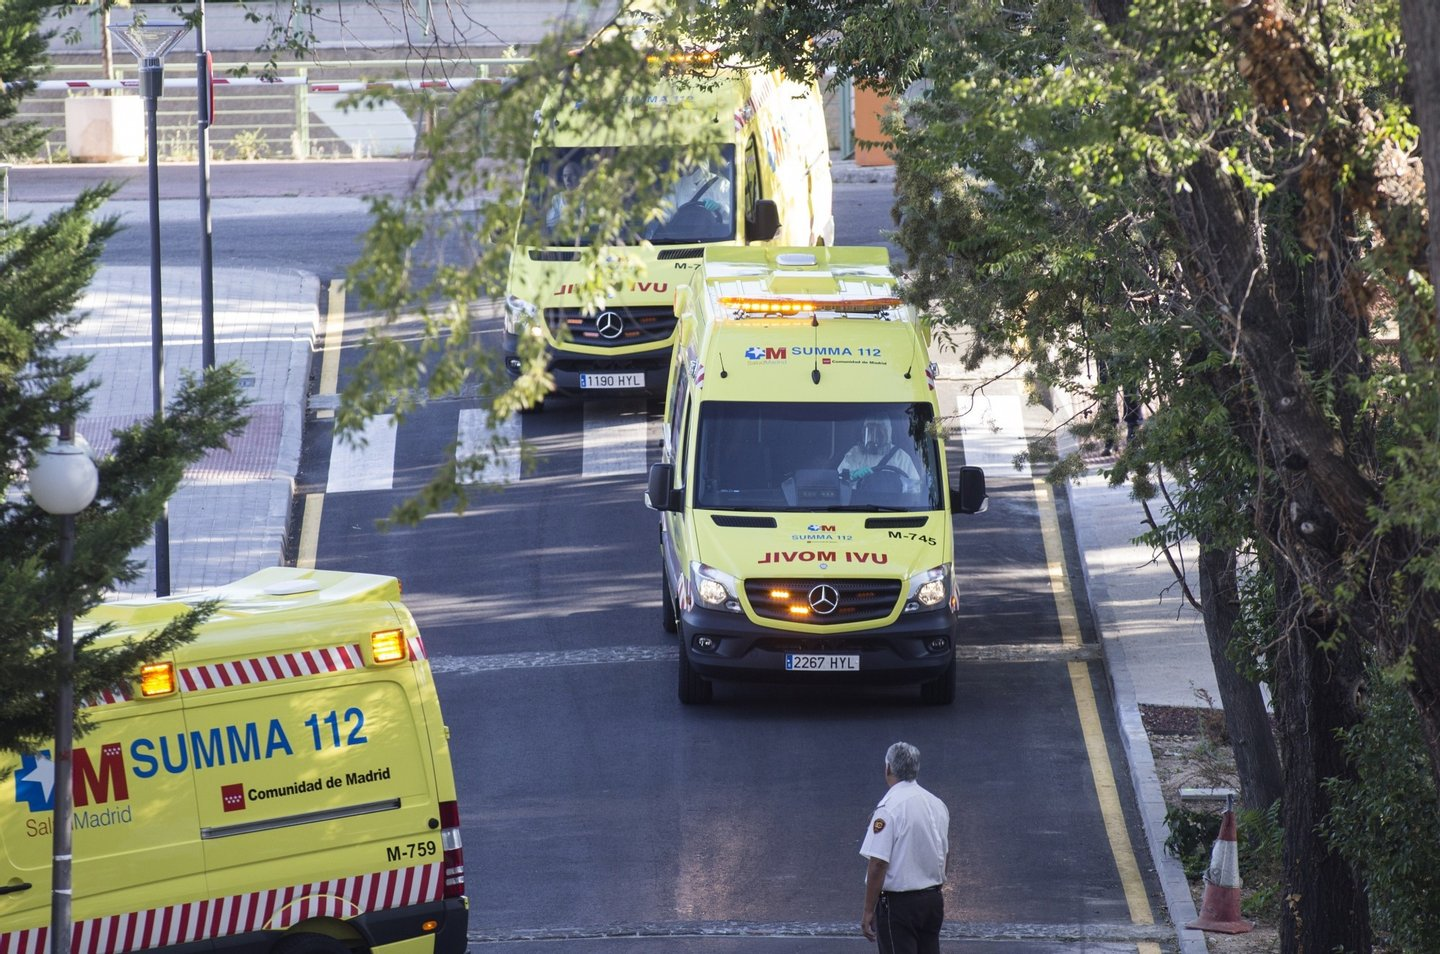 Ambulances carrying Roman Catholic priest Miguel Pajares, who contracted the deadly Ebola virus, and Spanish nun Juliana Bonoha Bohe arrive at the Carlos III hospital in Madrid on August 7, 2014. An elderly Spanish missionary infected with the deadly Ebola virus in Liberia landed in Madrid today, the first patient in the fast-spreading outbreak to be evacuated to Europe for treatment.  AFP PHOTO / OSCAR DEL POZO        (Photo credit should read OSCAR DEL POZO/AFP/Getty Images)